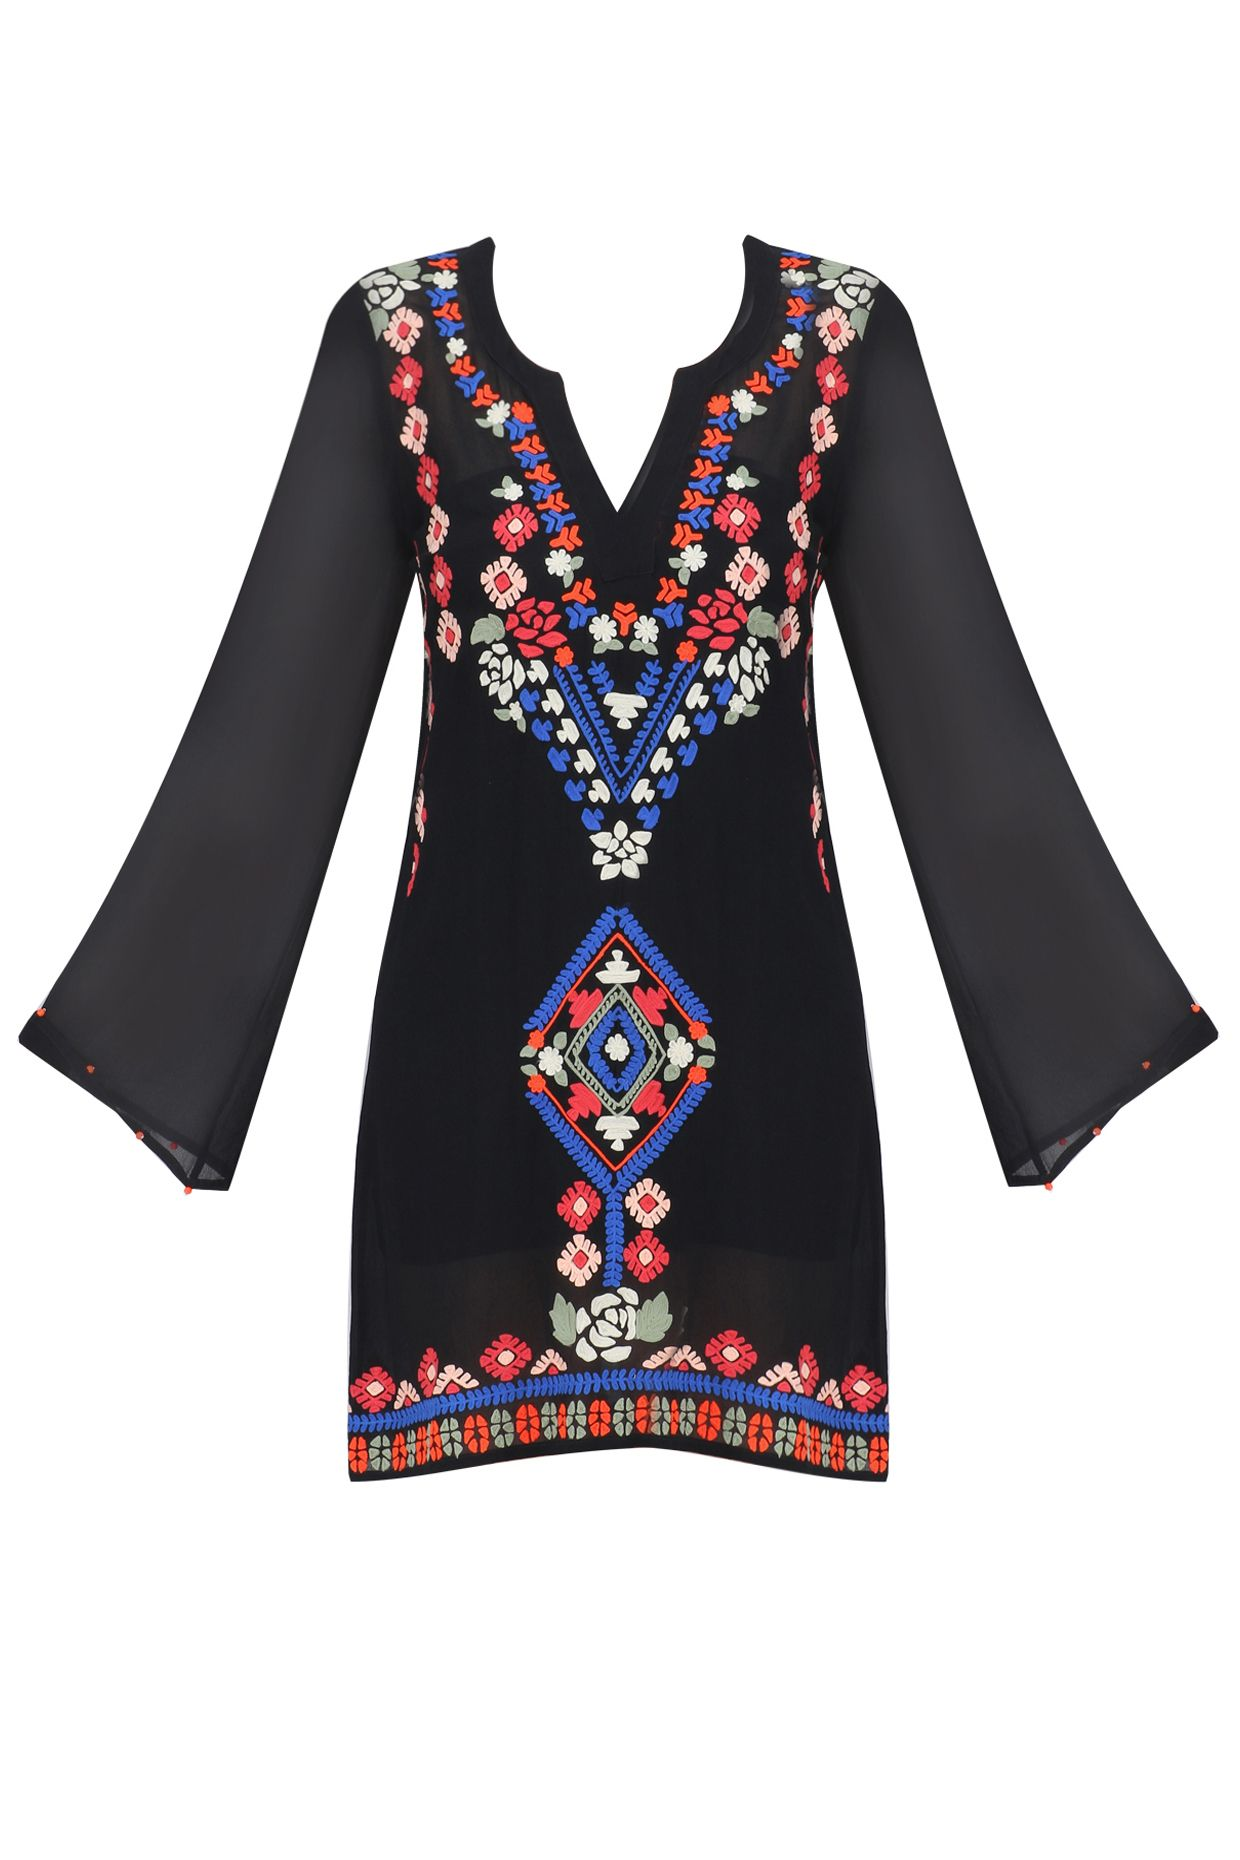 Black aztec embroidered flared sleeves dress available only at Pernia's Pop Up Shop.